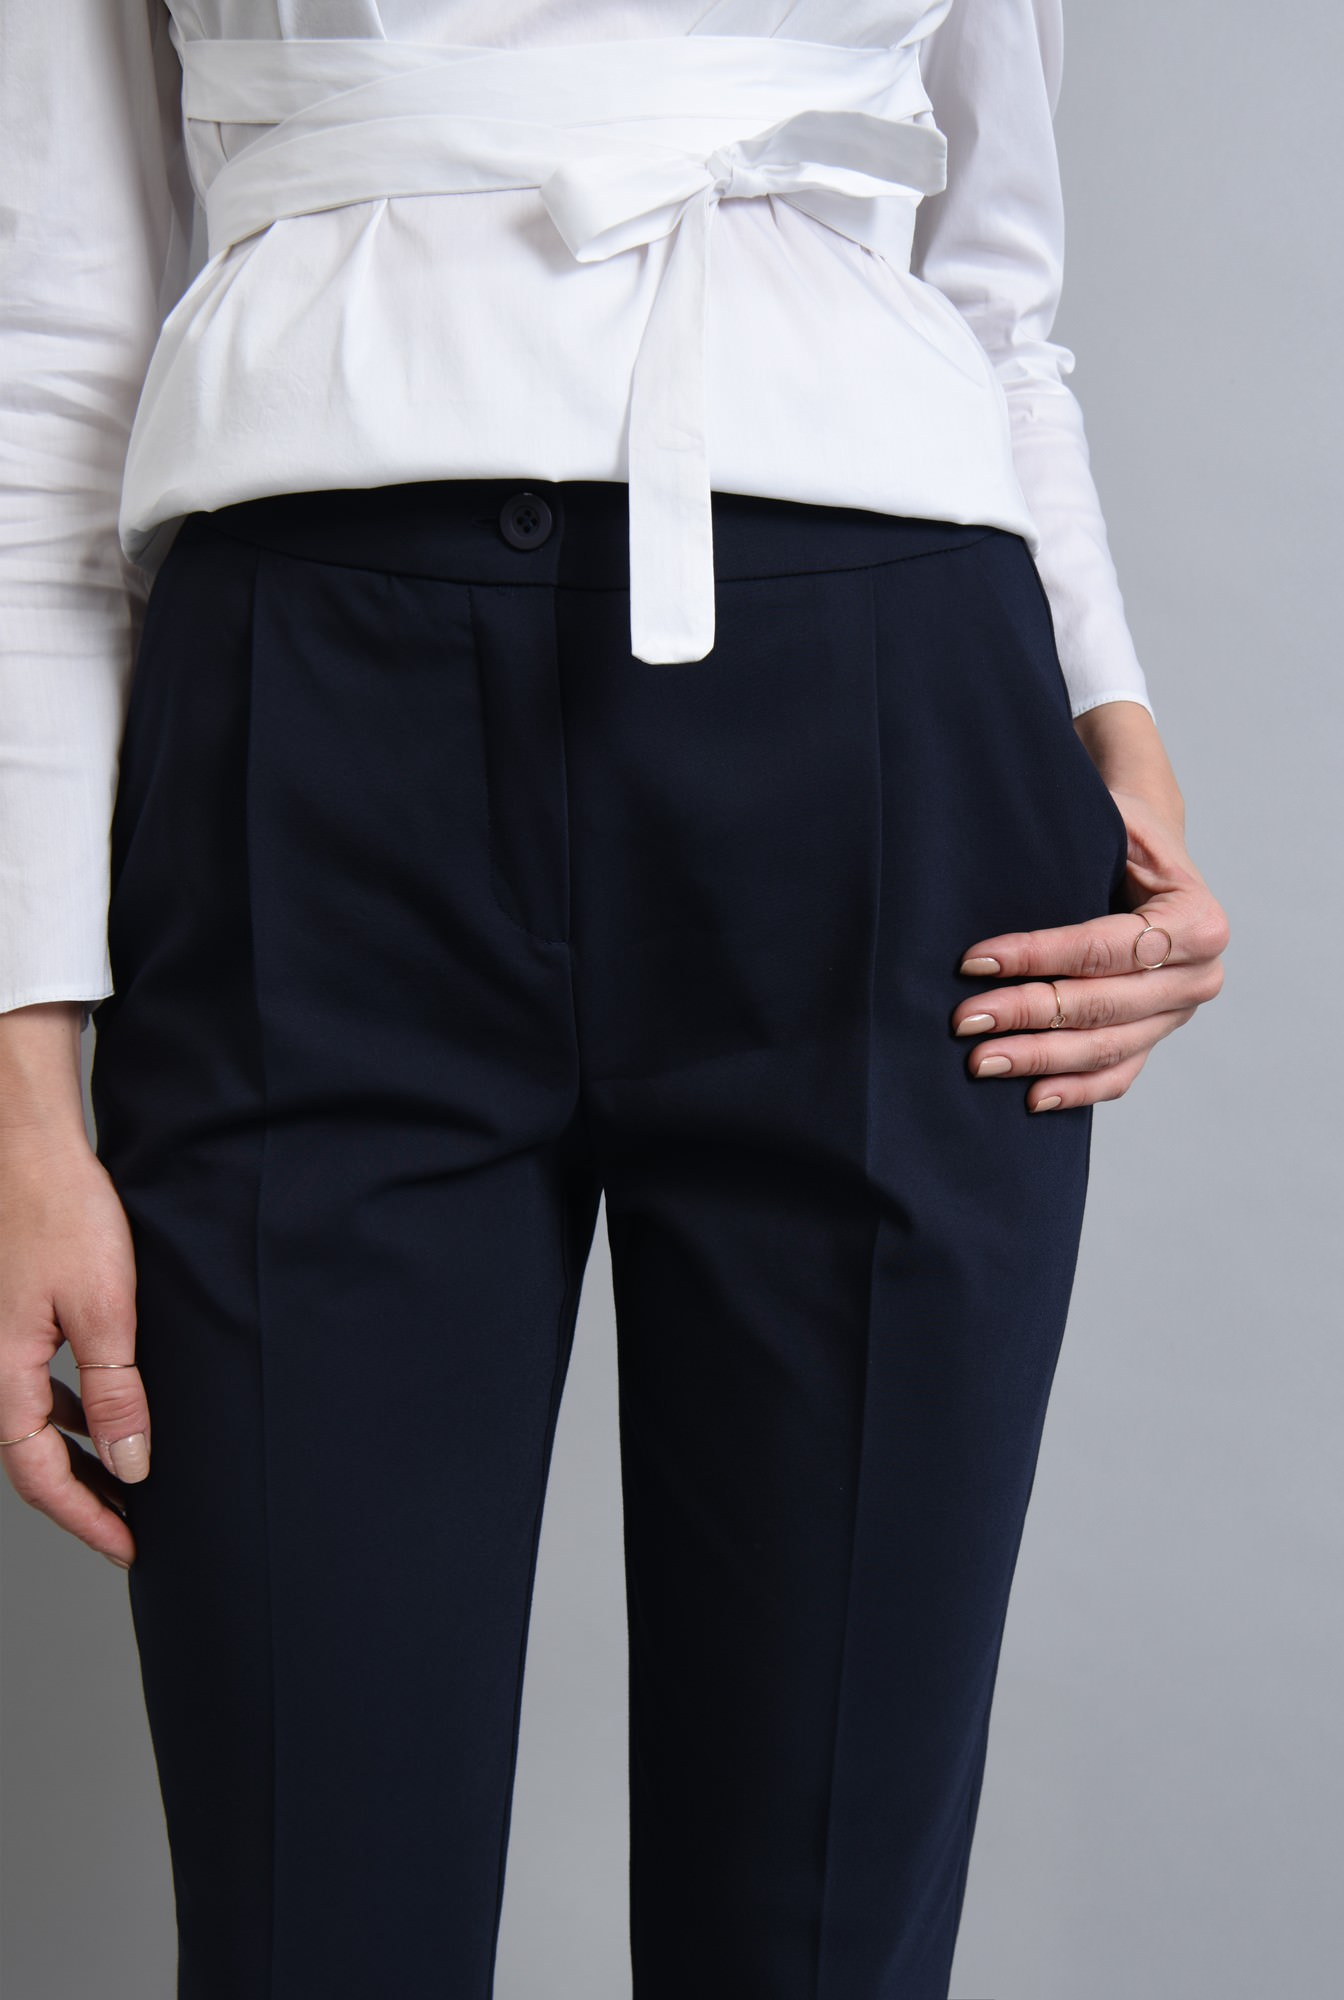 2 - PANTALON OFFICE PT 180-BLEUMARIN